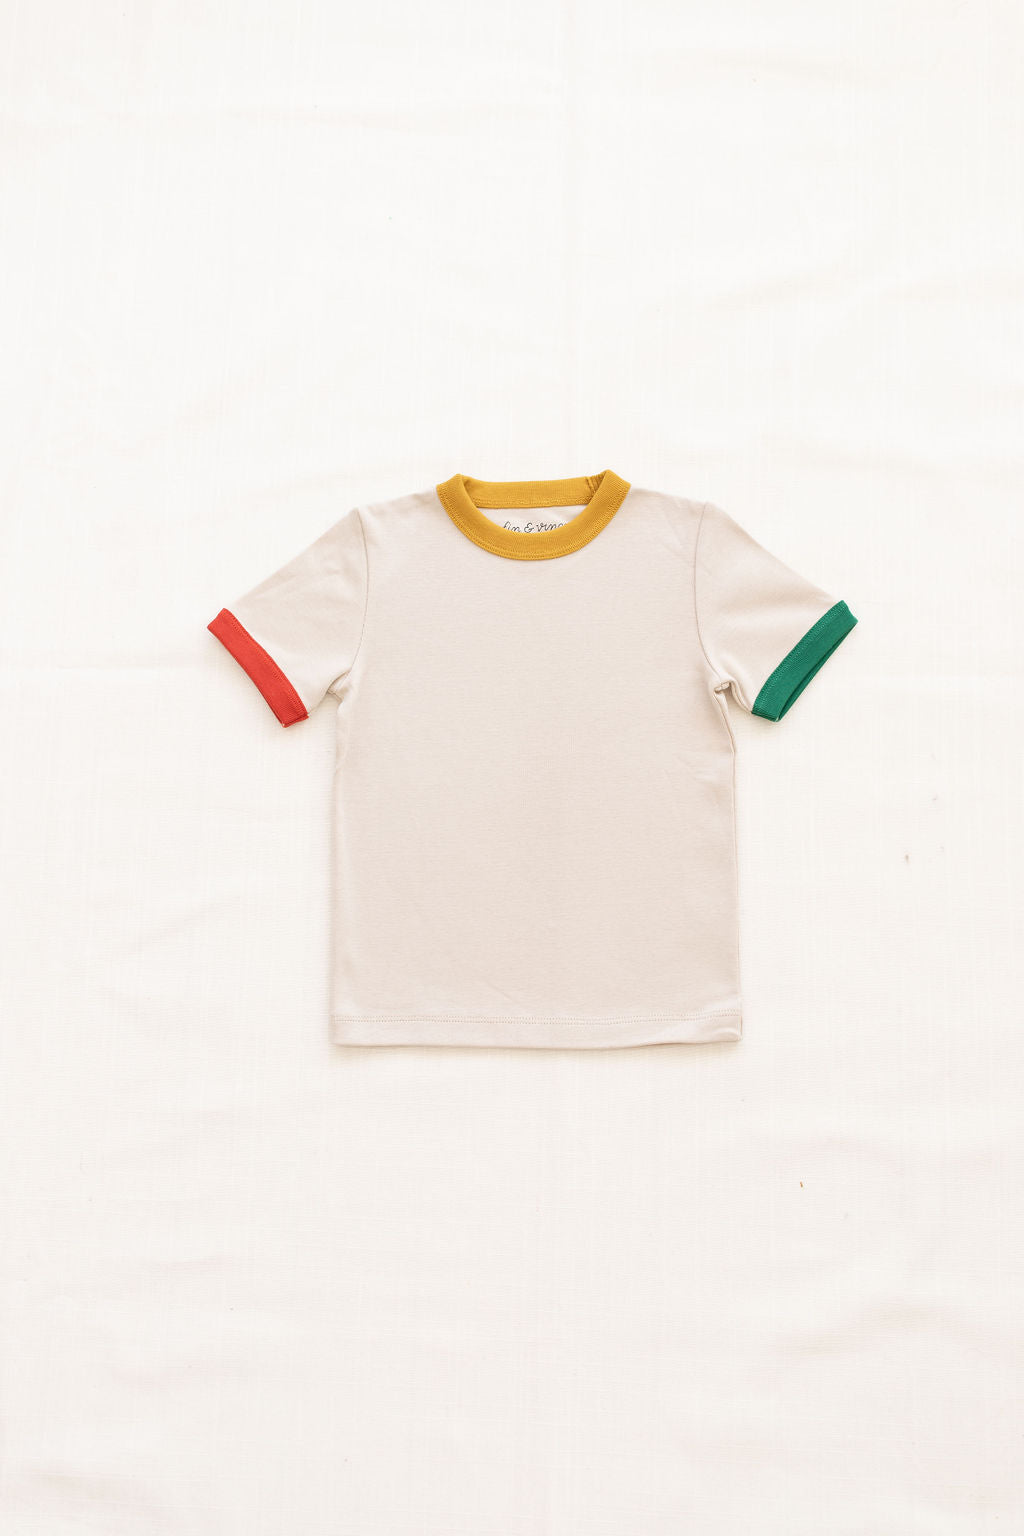 Fin and Vince - Vintage Tee (Oatmeal/Tri-Color)